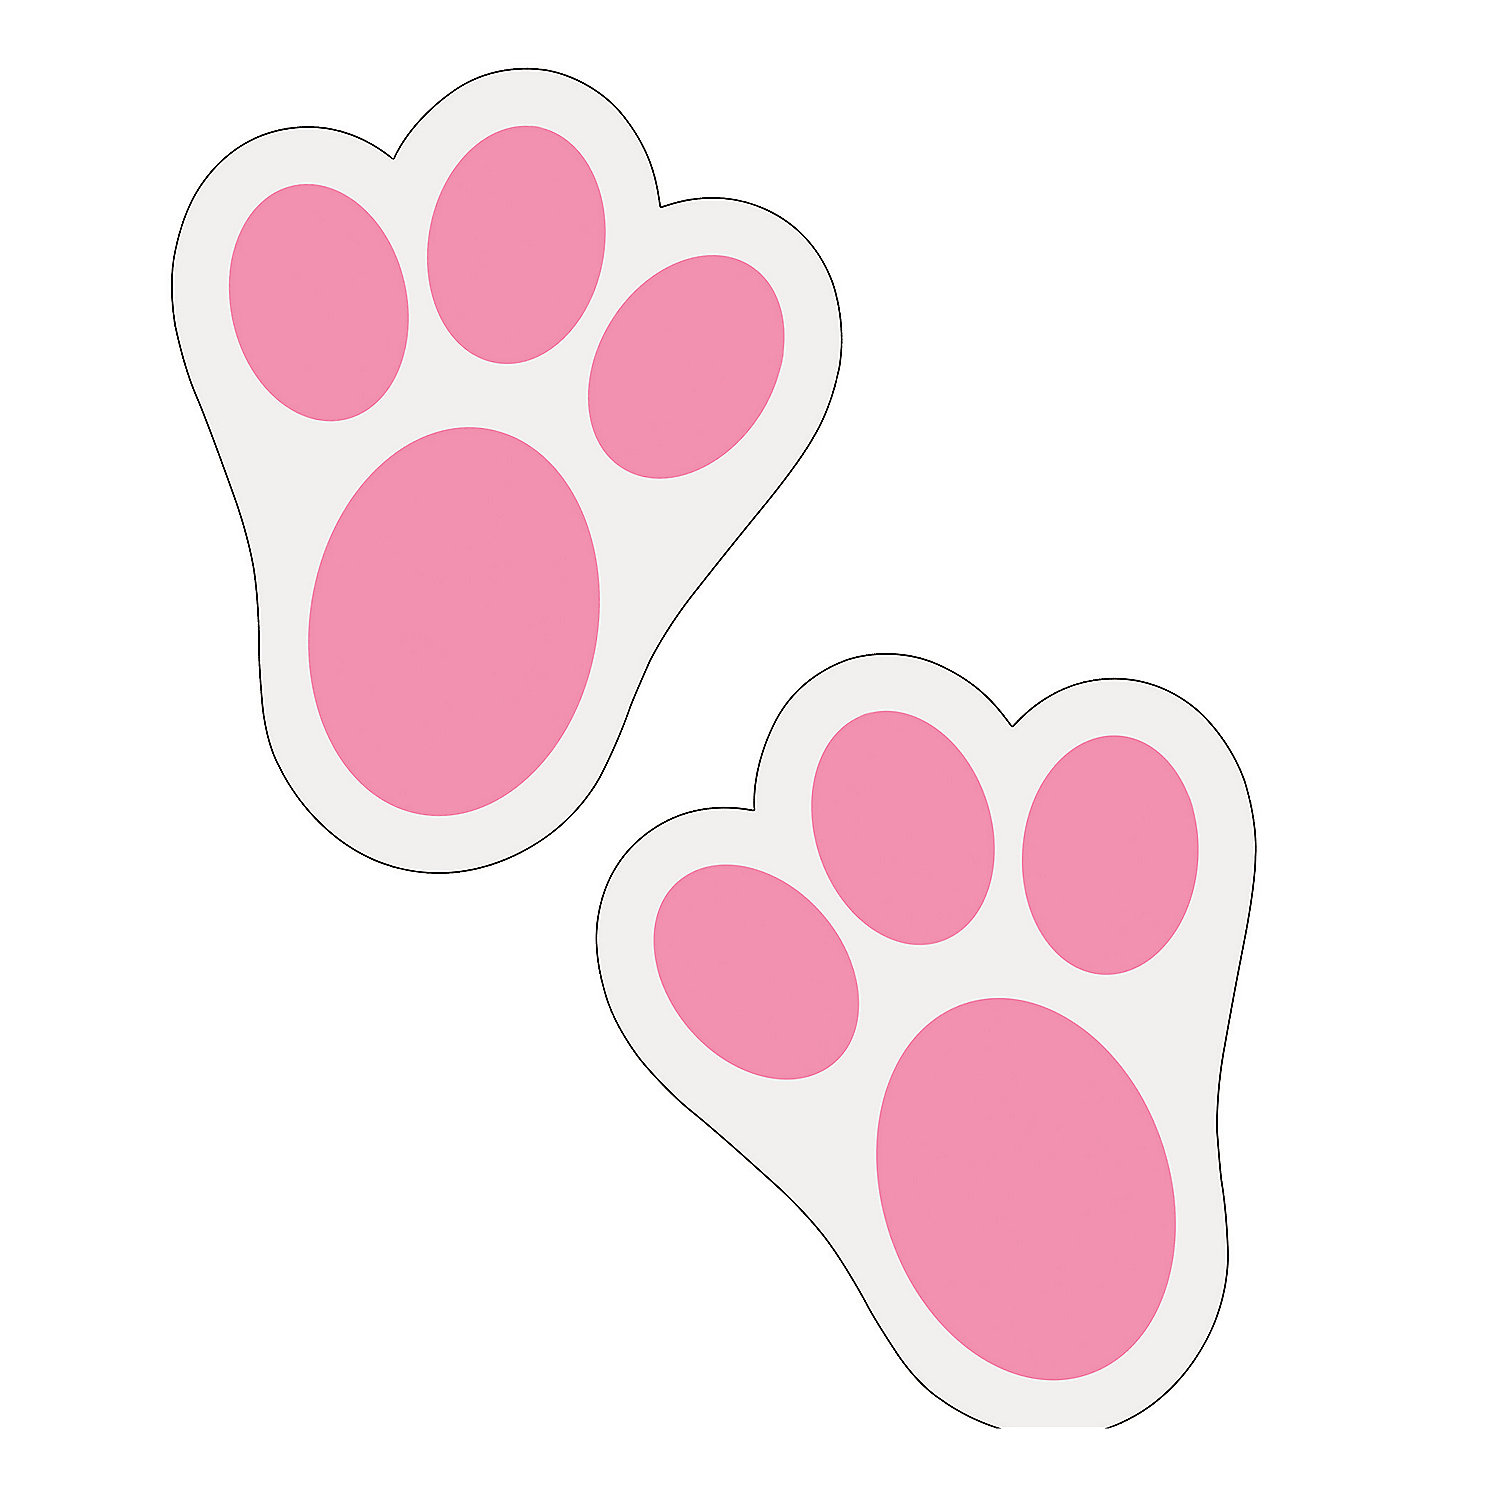 Free footprints cliparts download. Pawprint clipart bunny